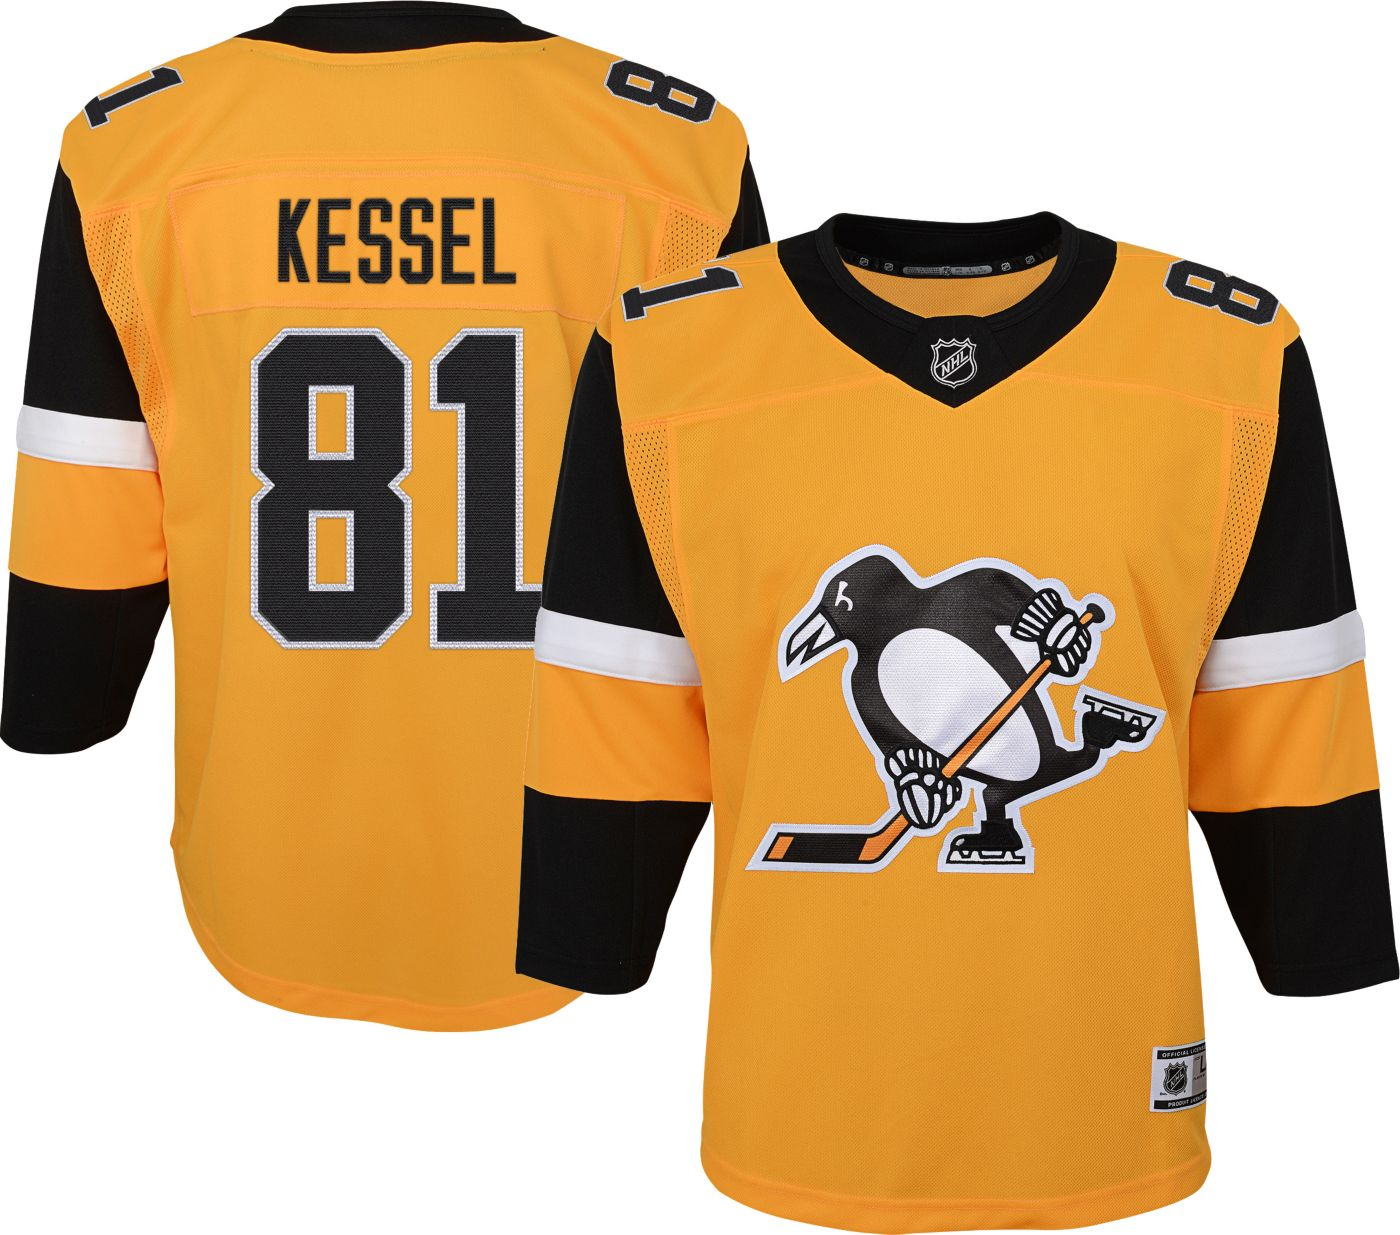 NHL Youth Pittsburgh Penguins Phil Kessel #81 Premium Alternate Jersey